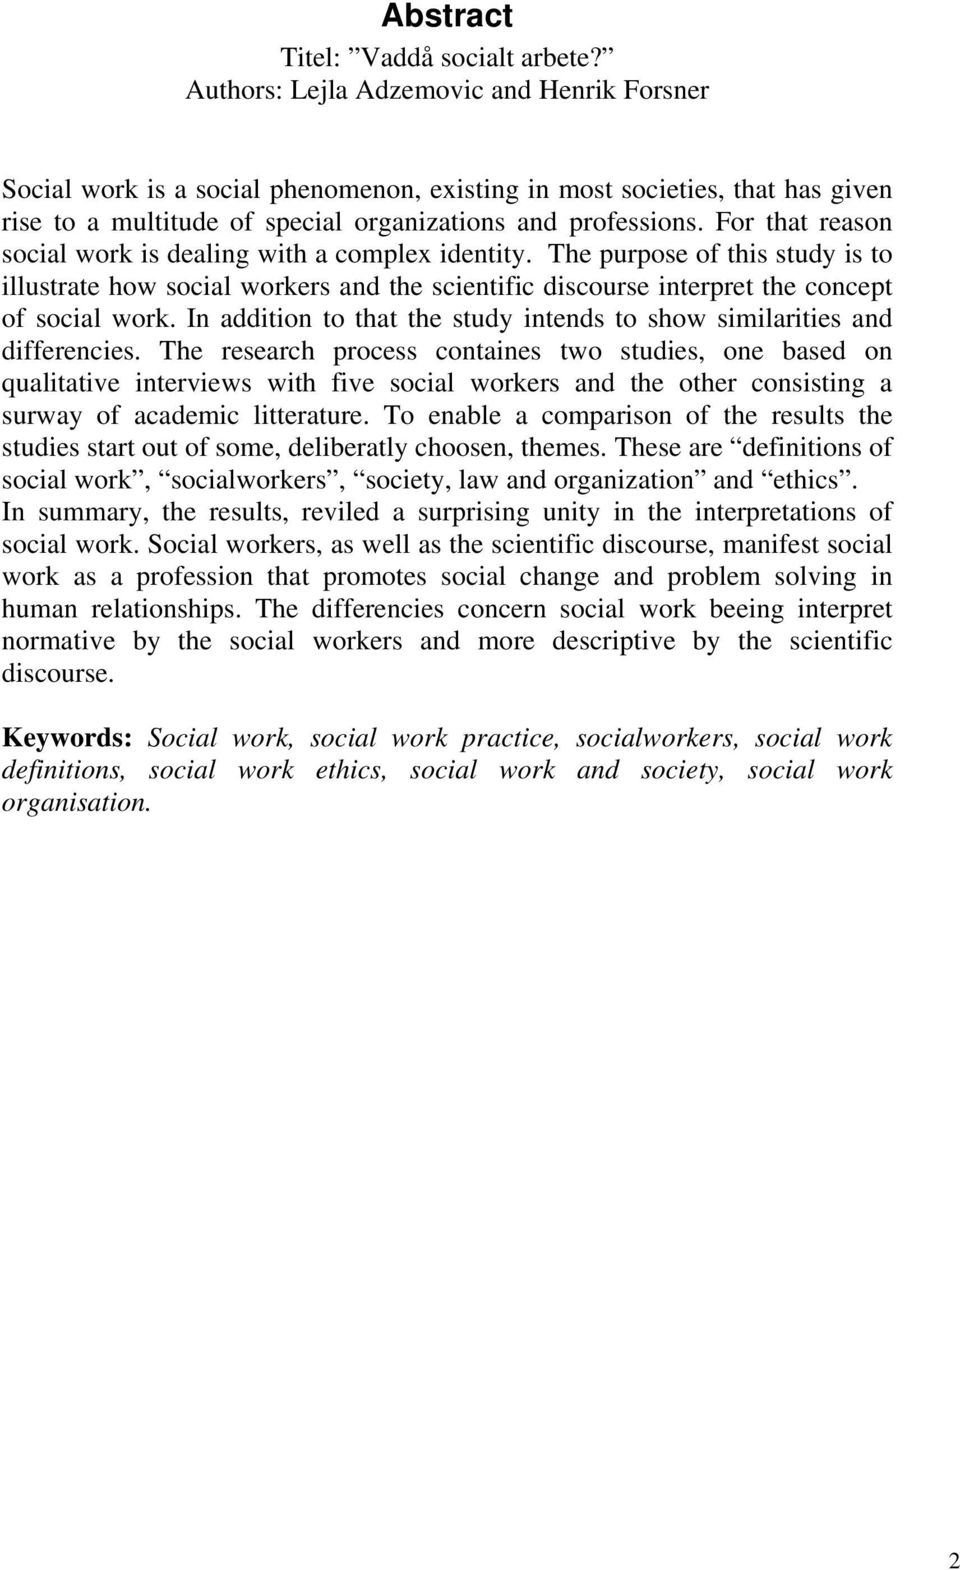 For that reason social work is dealing with a complex identity. The purpose of this study is to illustrate how social workers and the scientific discourse interpret the concept of social work.